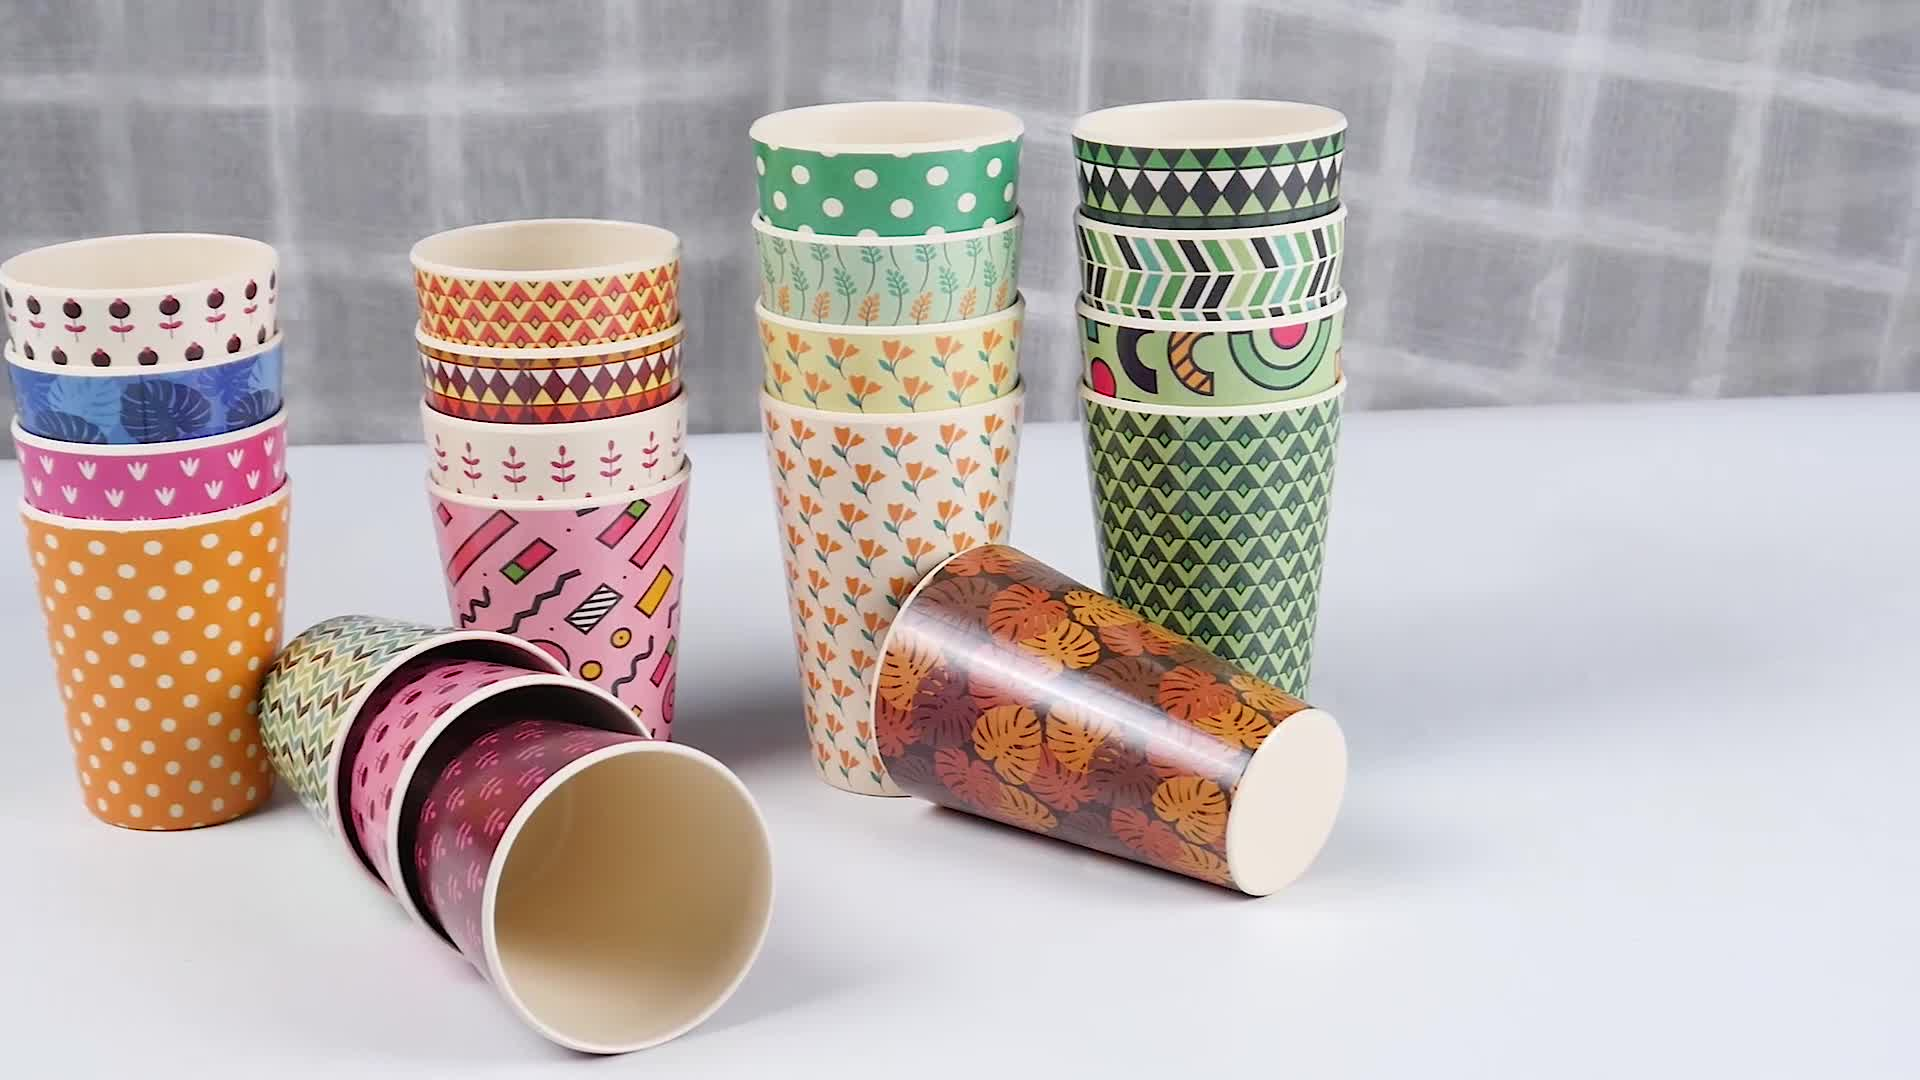 Unbreakable  fiber coffee cup bamboo fibre reusable bamboo reusable coffee cup